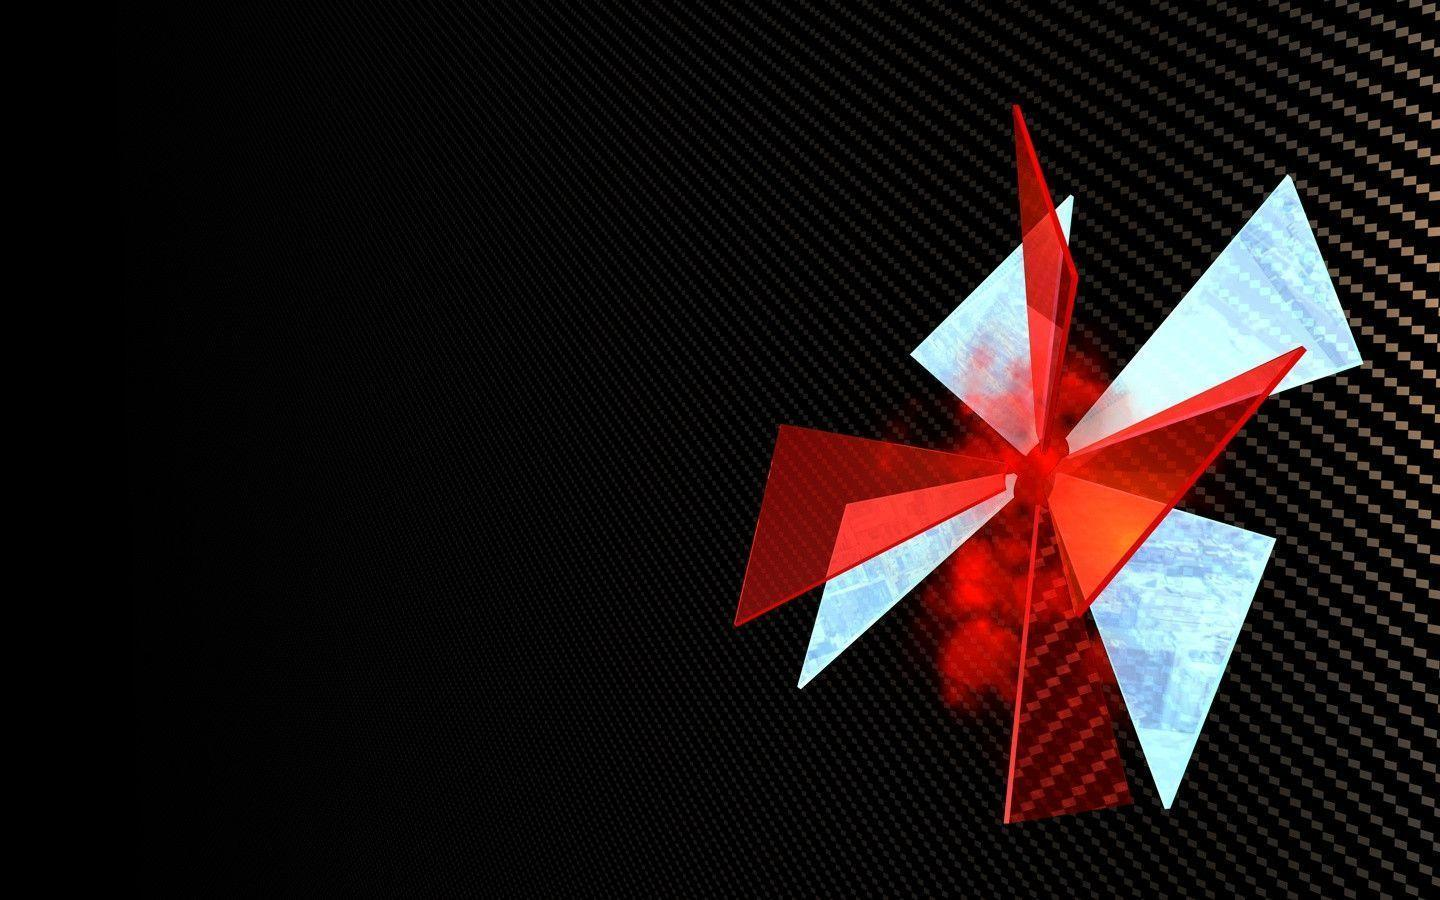 Wallpapers de Umbrella Corporation [Una te llevas] parte 2 - Taringa!